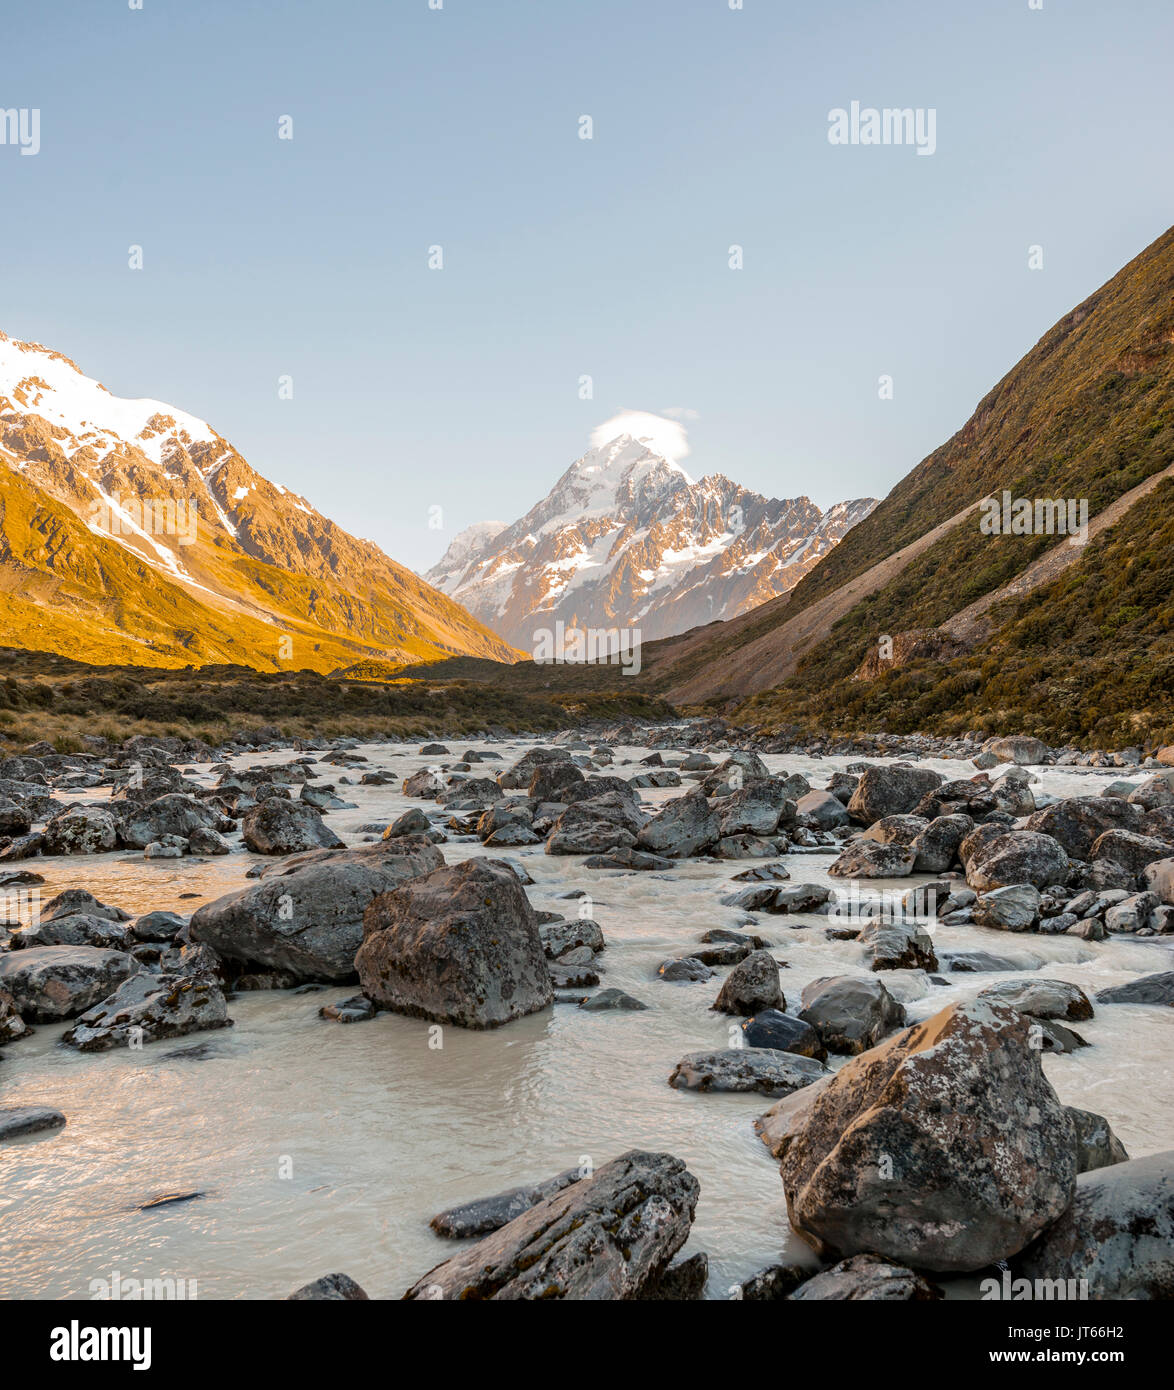 Sunrise, Hooker River, Mount Cook, Mount Cook National Park, Southern Alps, Hooker Valley, Canterbury, South Island, New Zealand Stock Photo